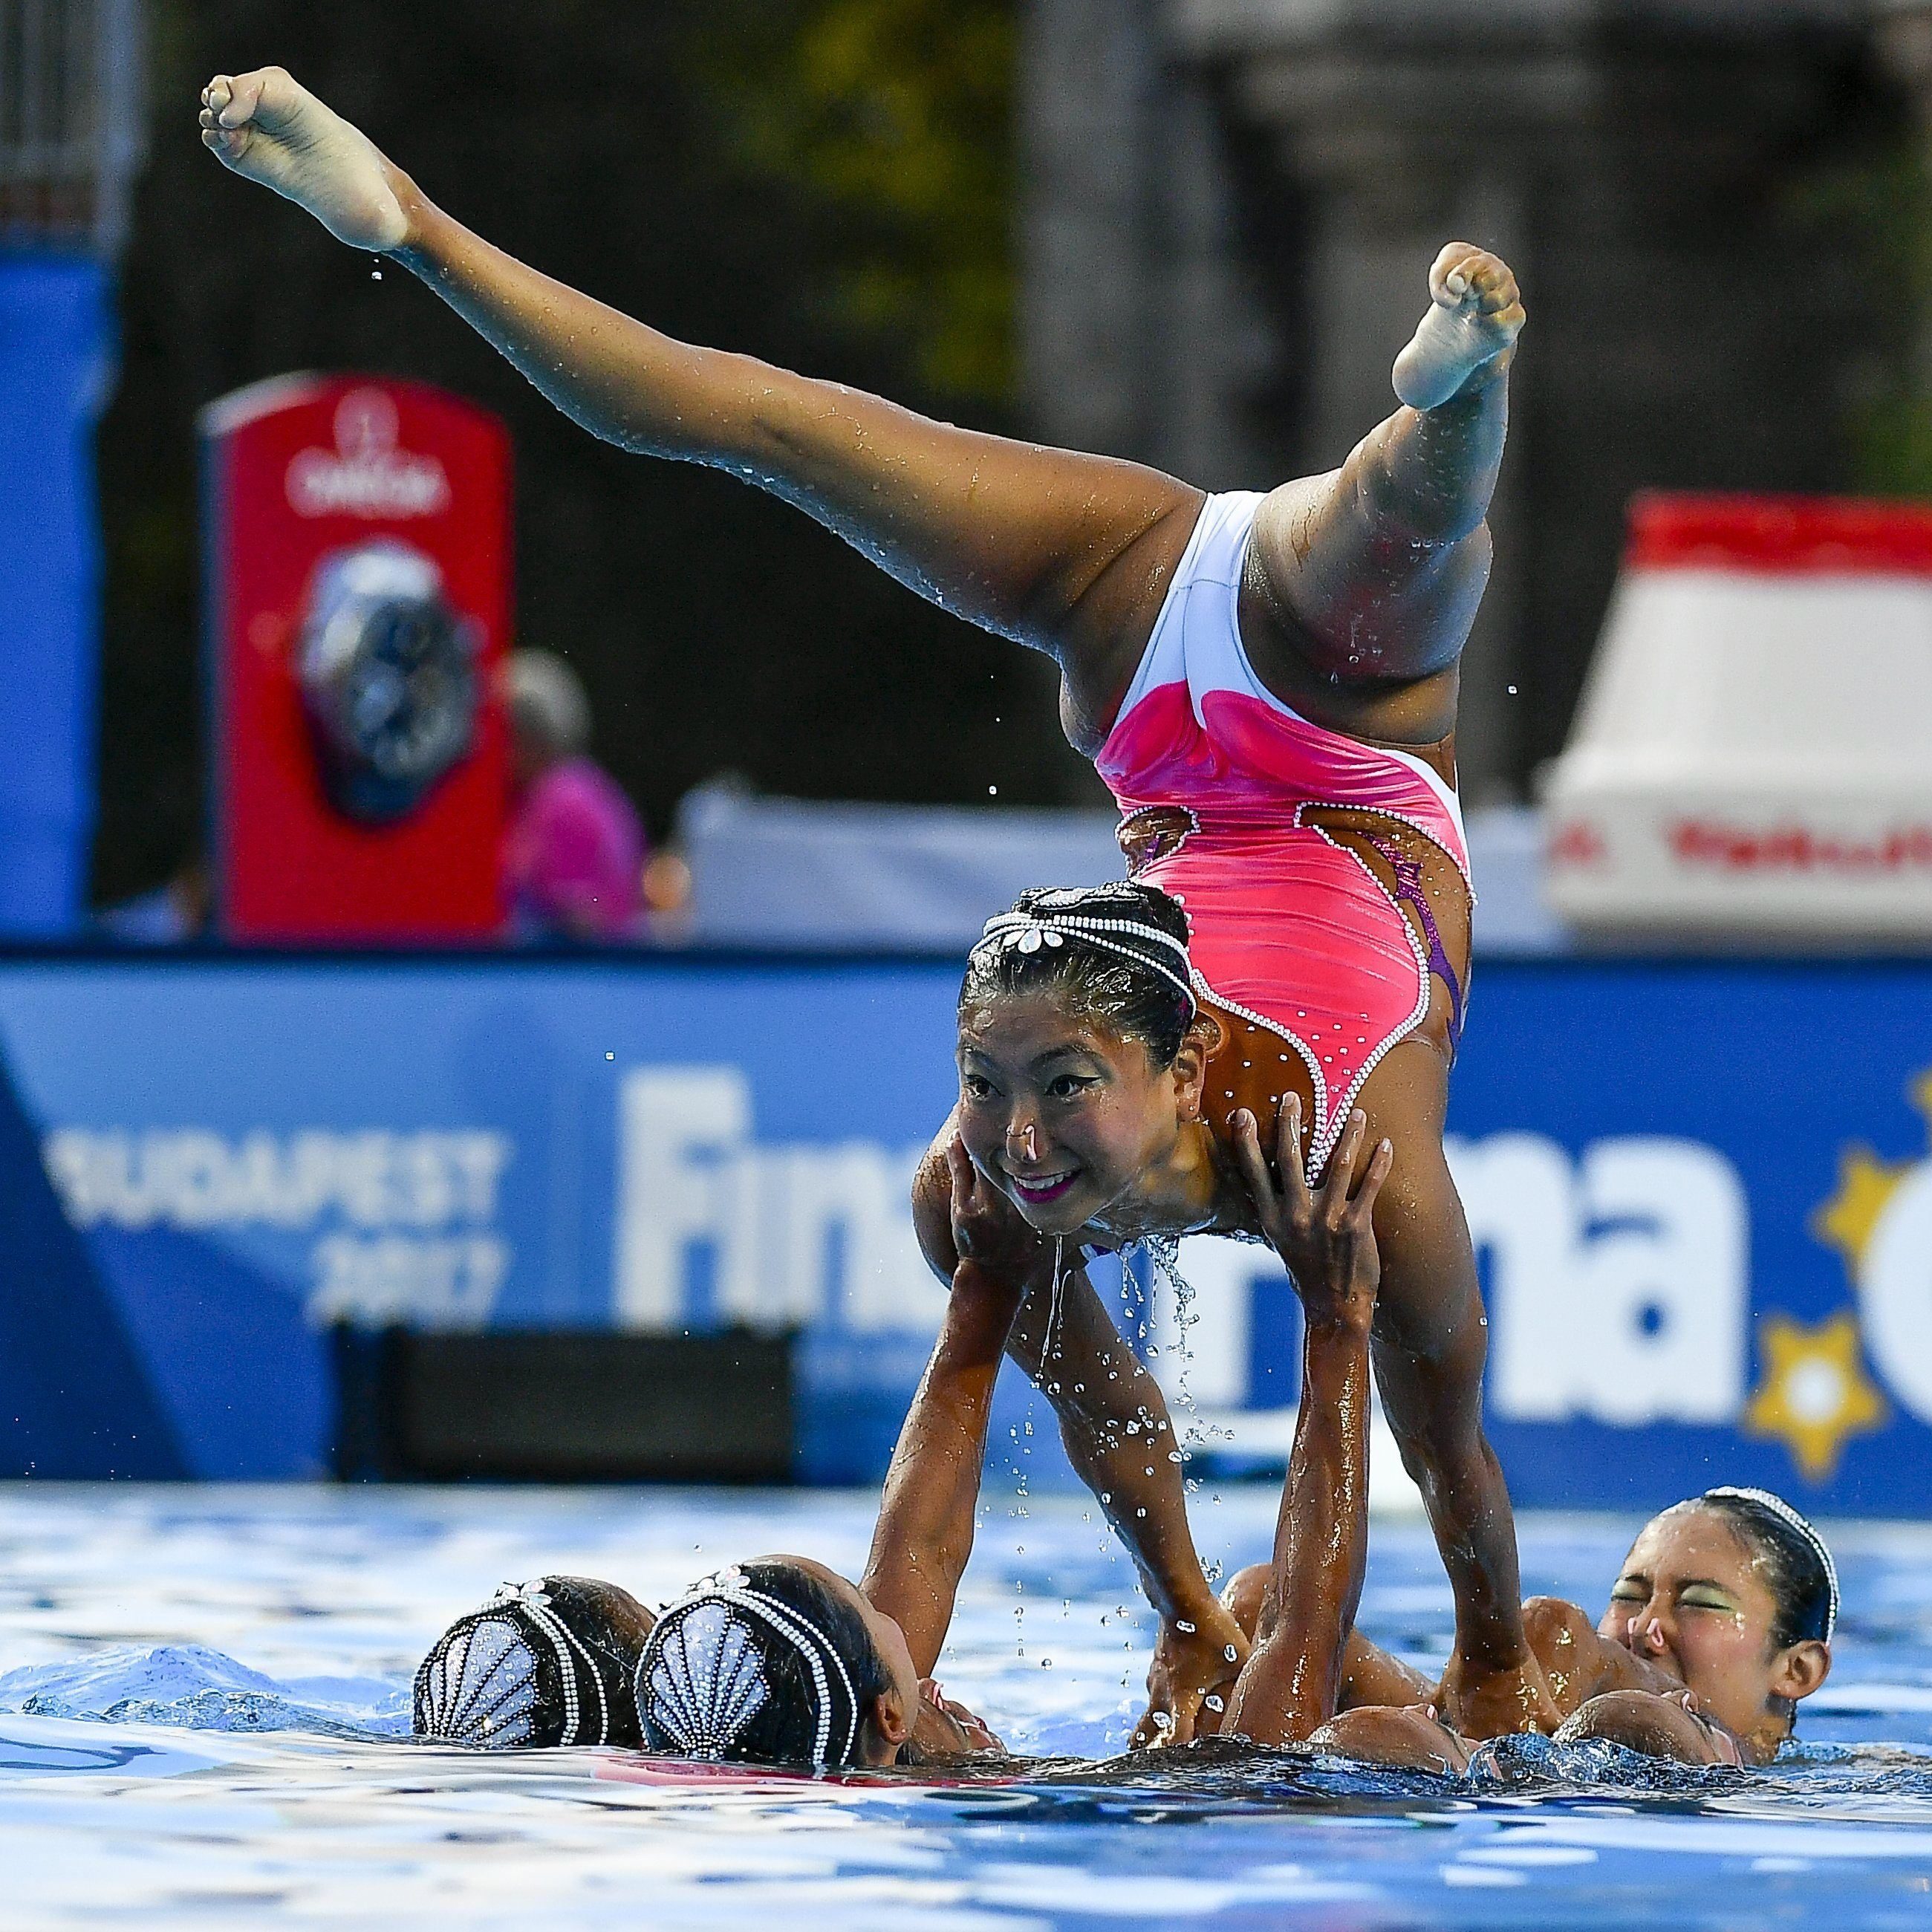 Team Japan performs during the Women's Free Combination Synchronized Swimming Preliminary Free Combination of the 17th FINA World Championships 2017 in Budapest, Hungary, Thursday, July 20, 2017. (Zsolt Czegledi/MTI via AP)